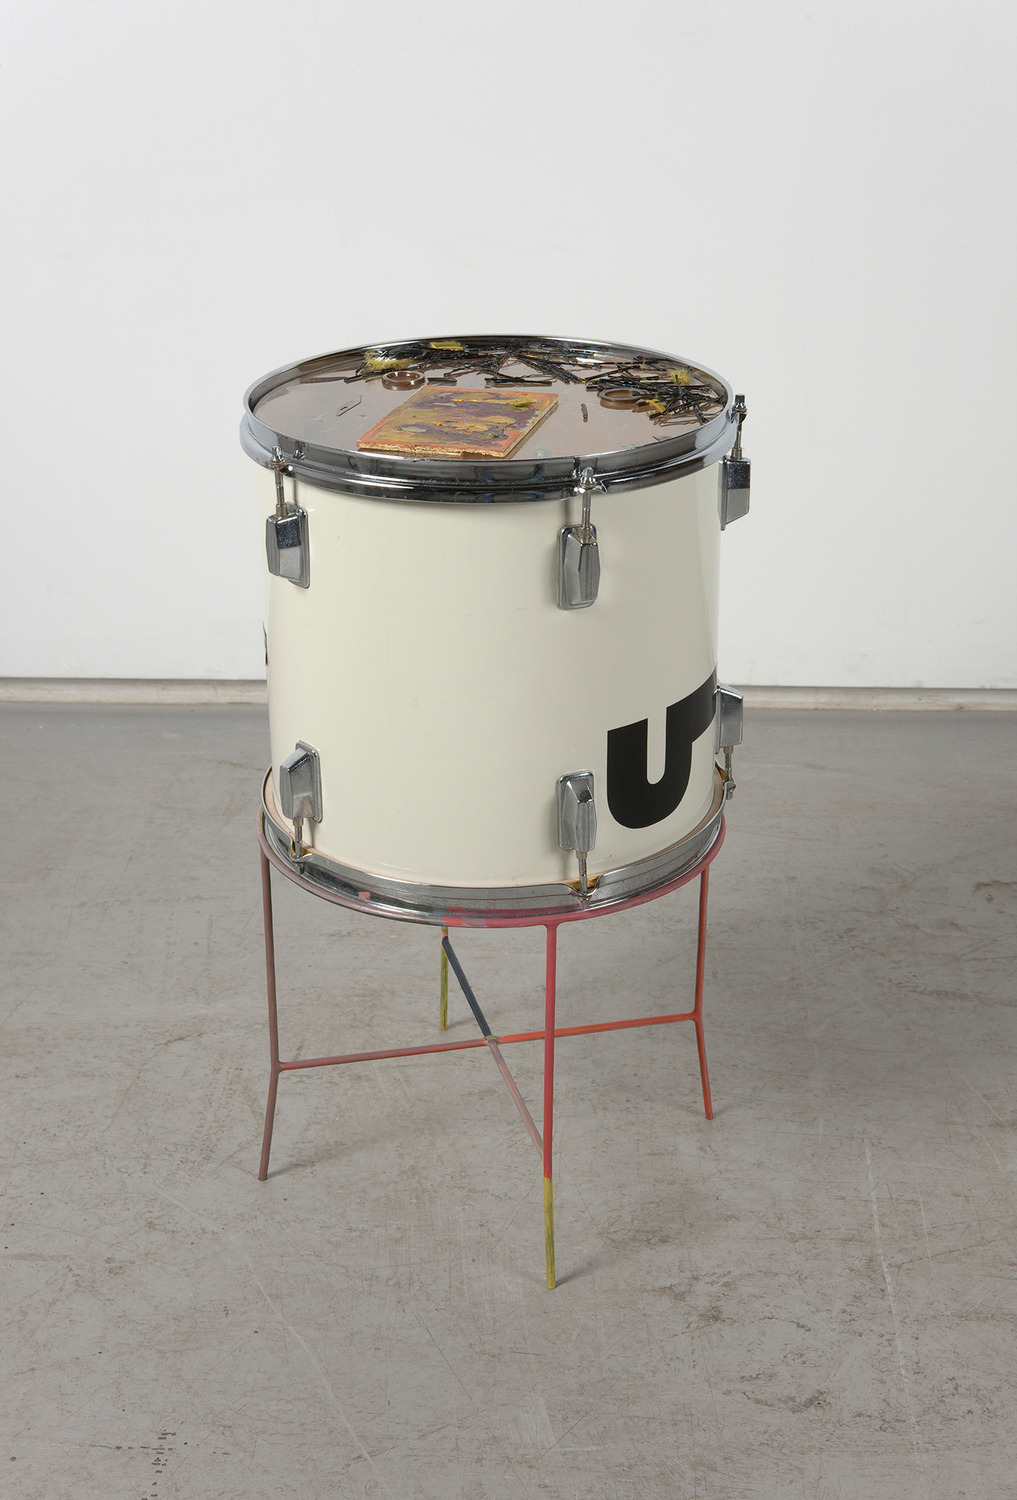 Upsetter Makes You Better, 2011, Mixed media, Drum 32.5 cm diameter x 36 cm height; Stand 30.5 cm diameter x 30.5 cm height